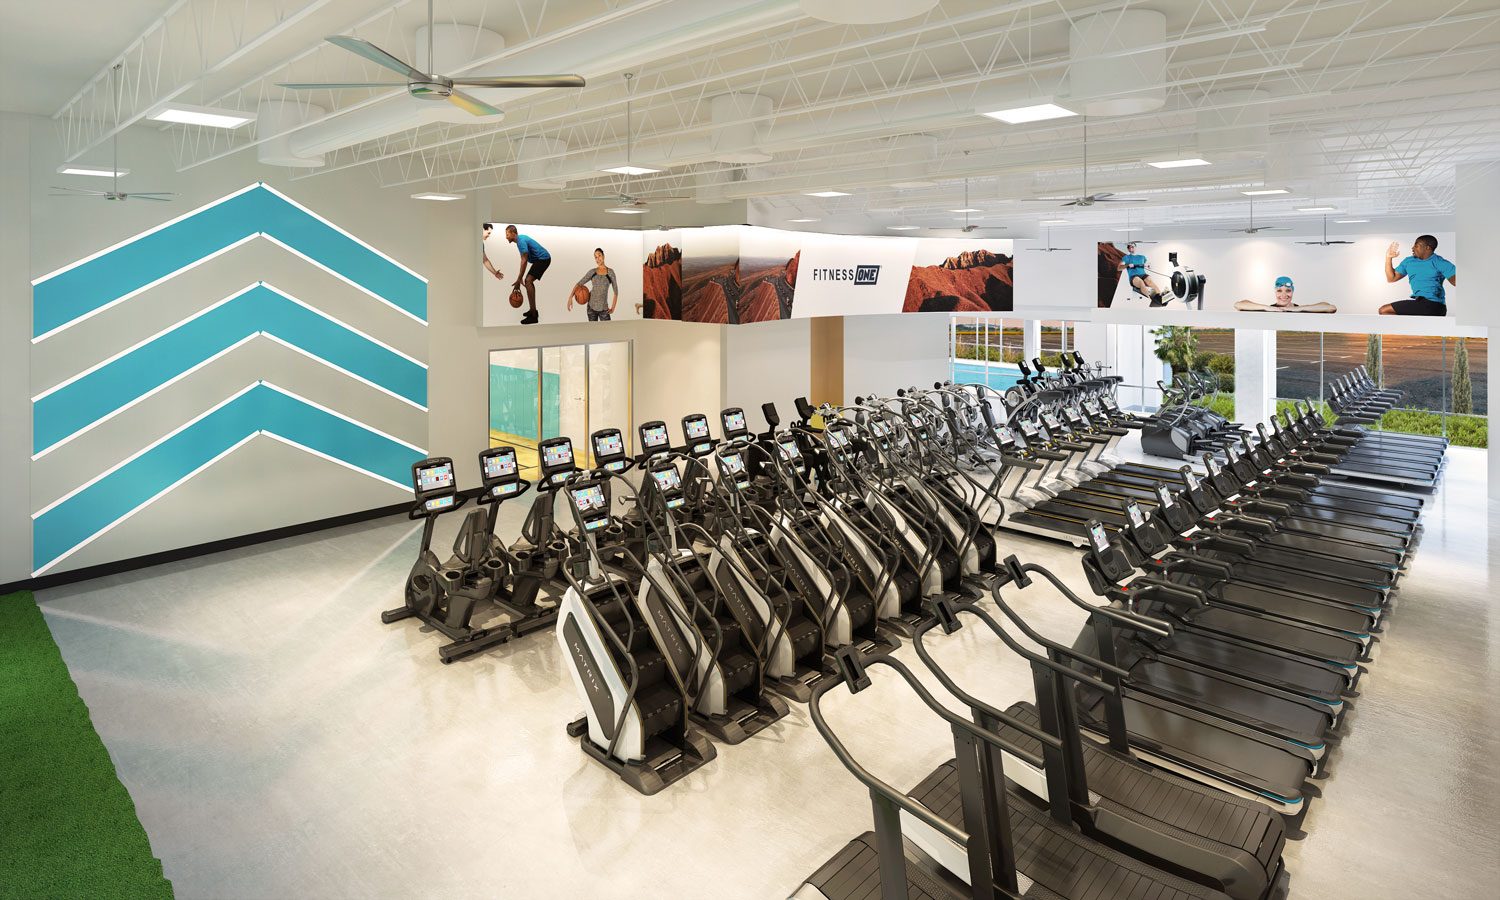 Las Cruces New Mexico Fitness One